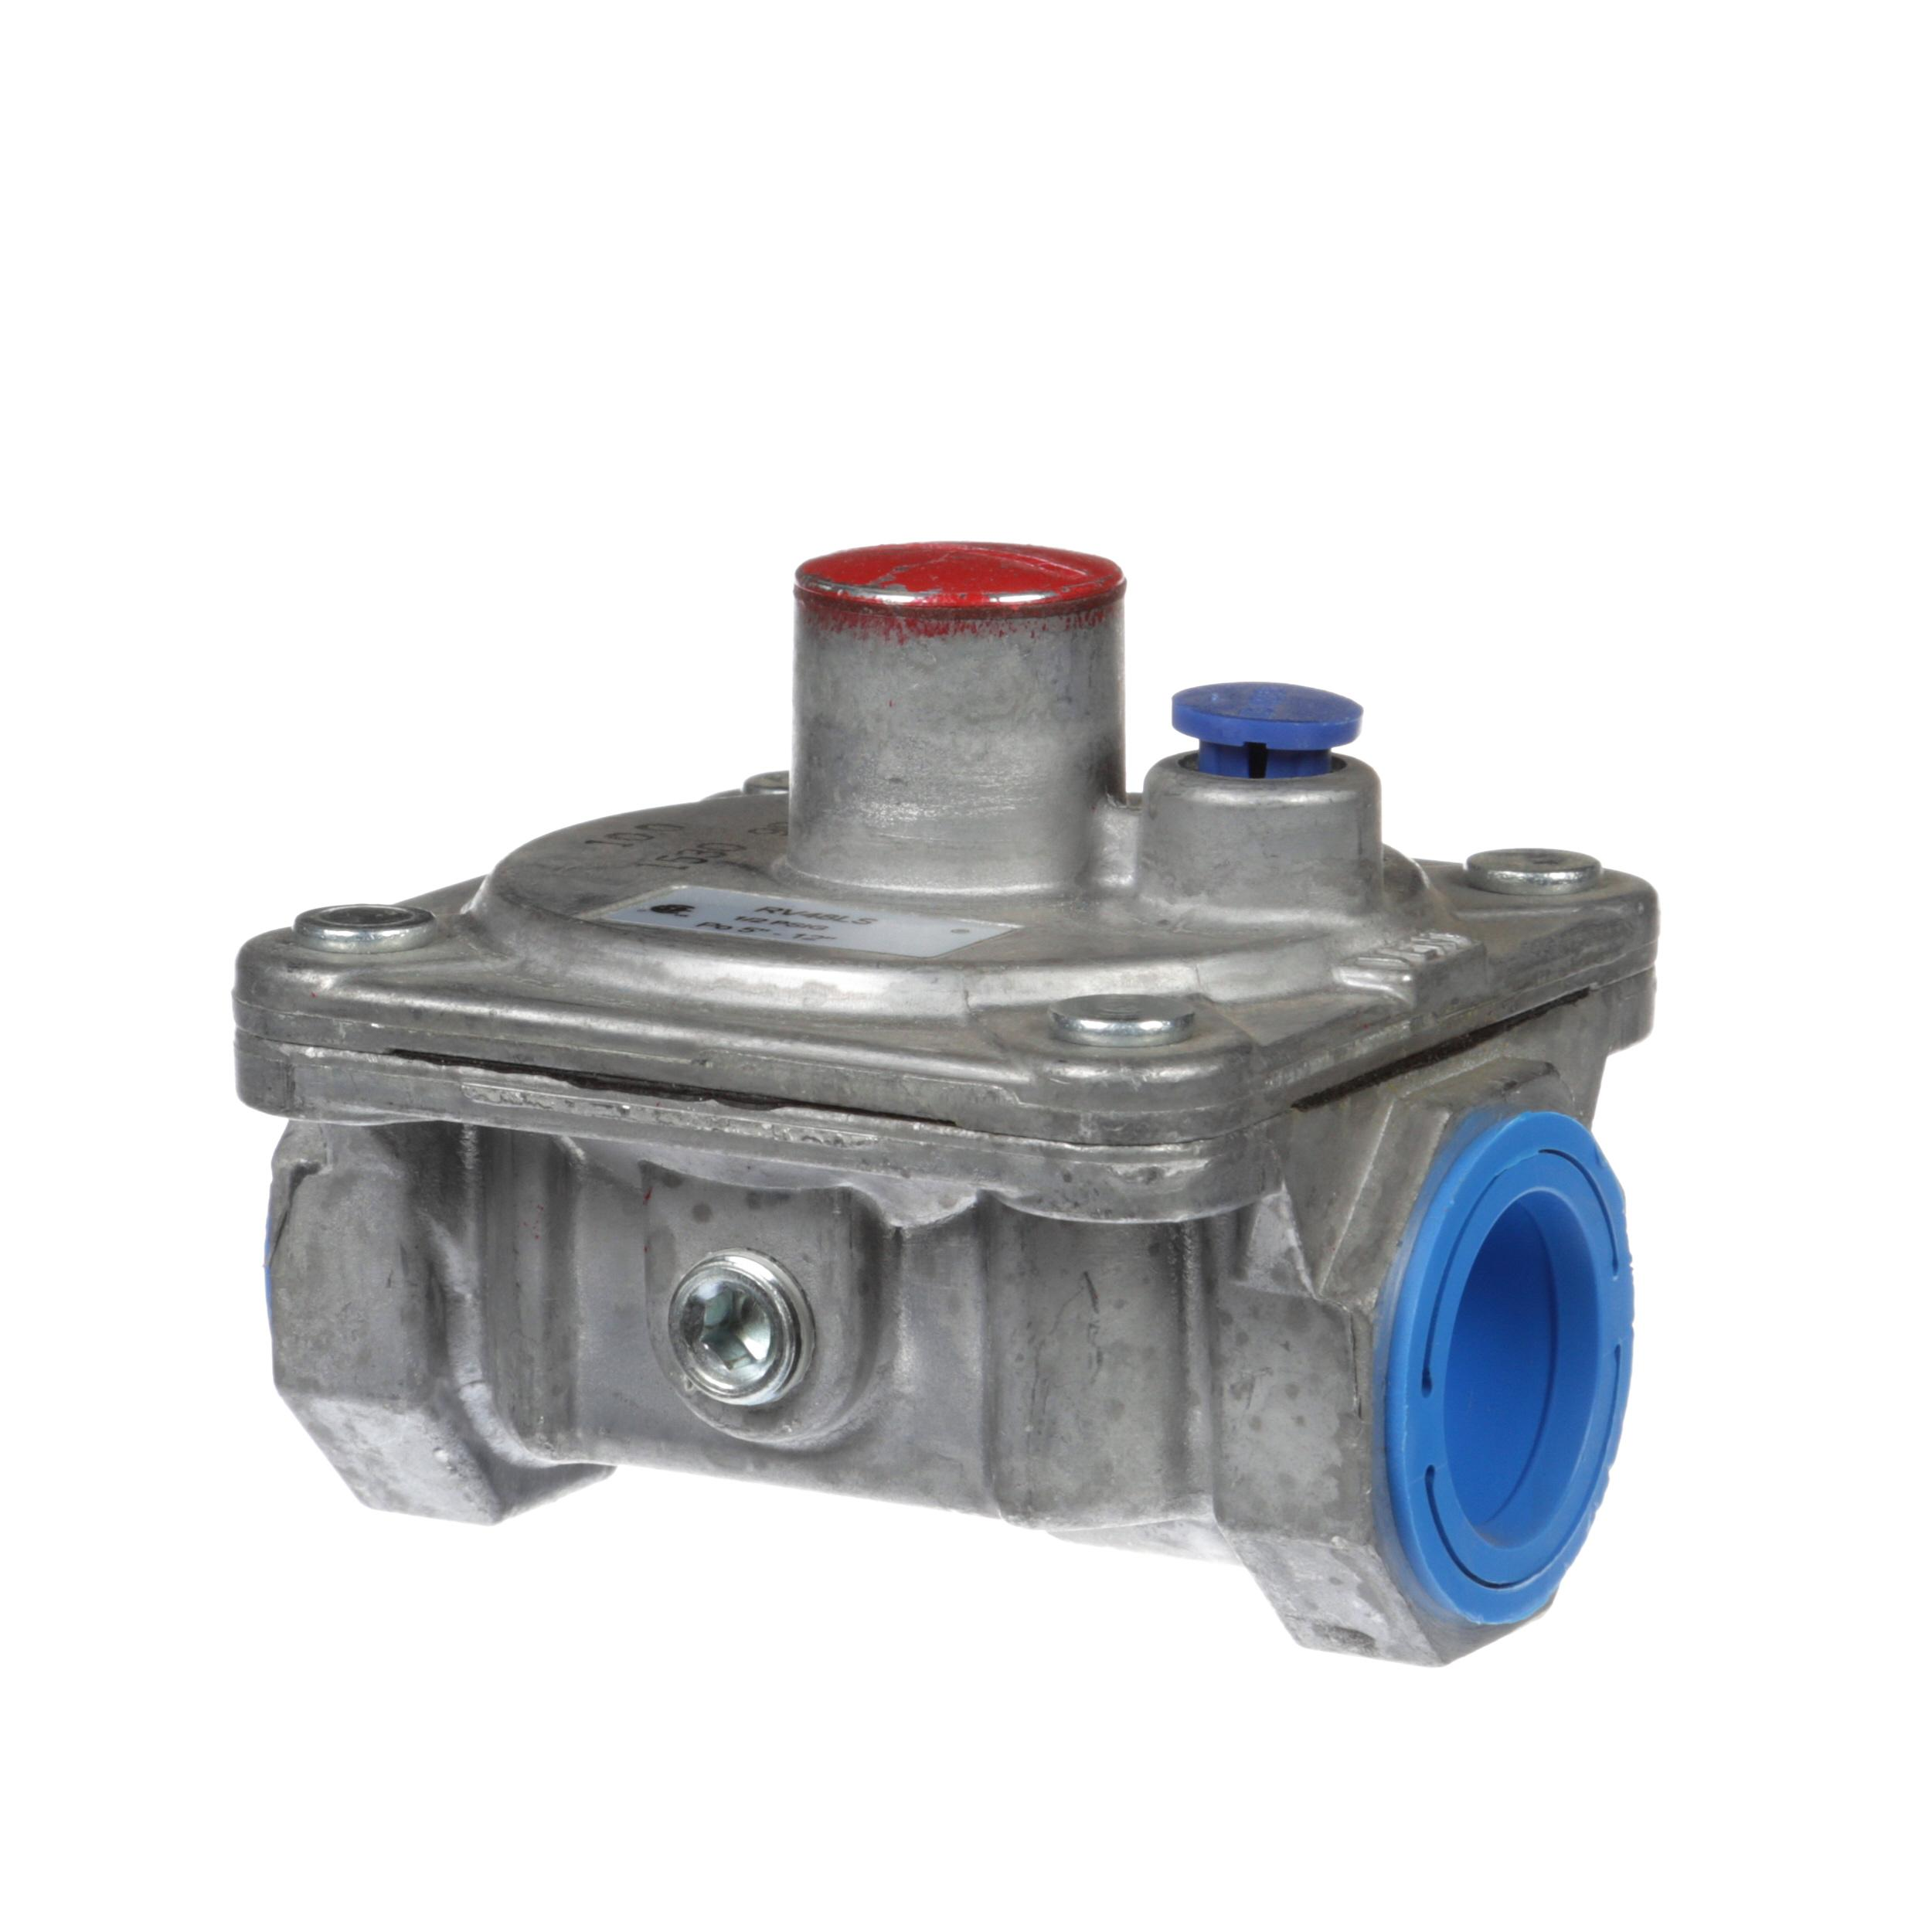 IMPERIAL LP PRESSURE REGULATOR